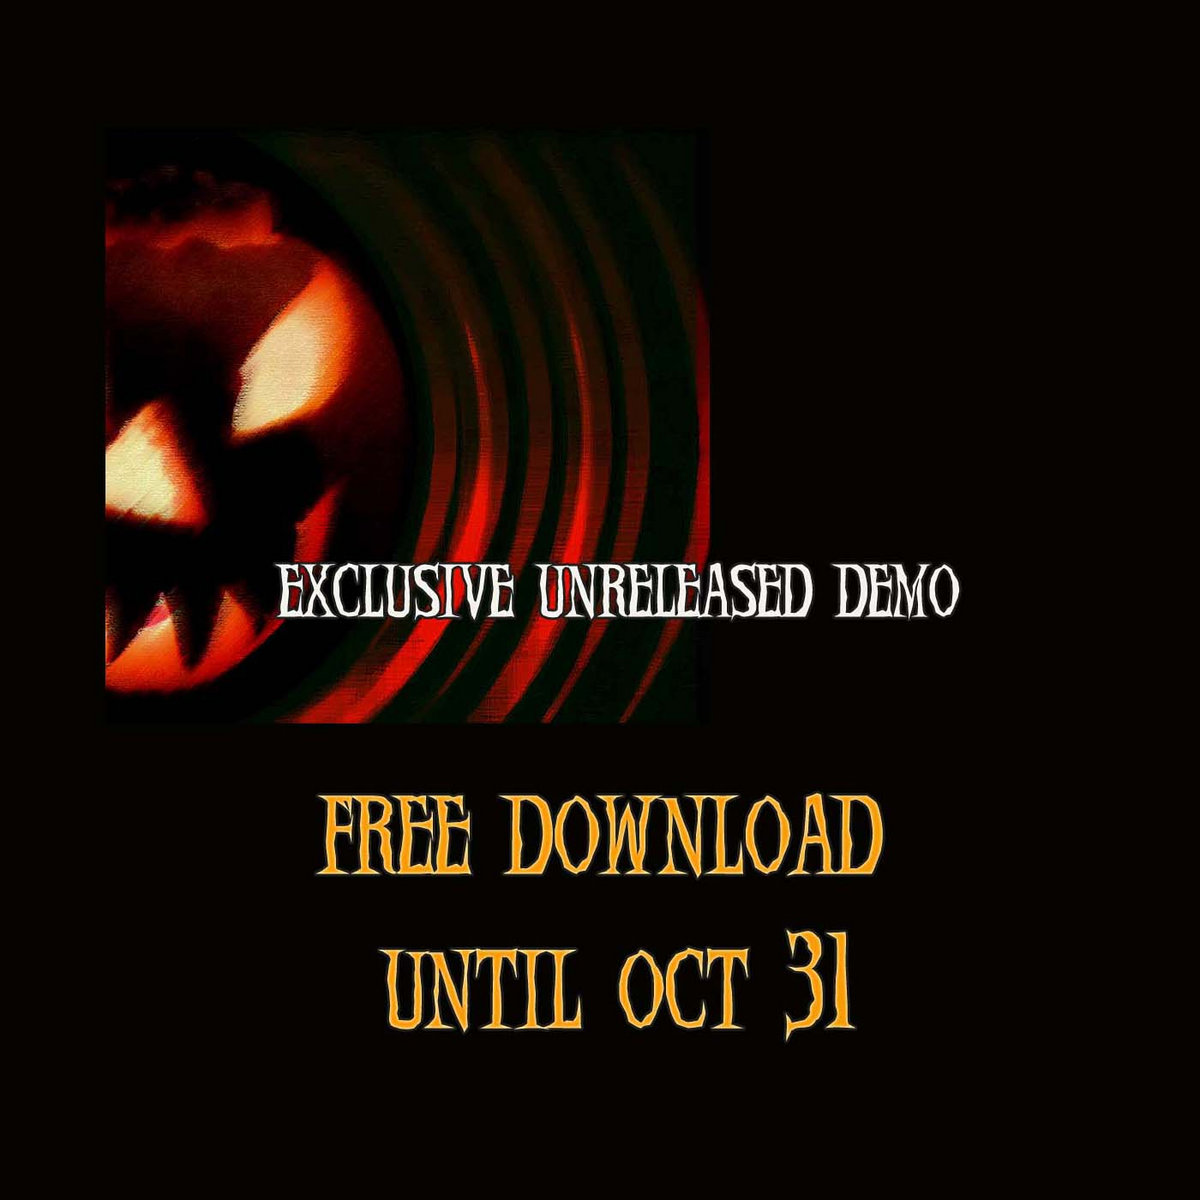 Halloween 2017 - The Curse limited Free Halloween Music download ...